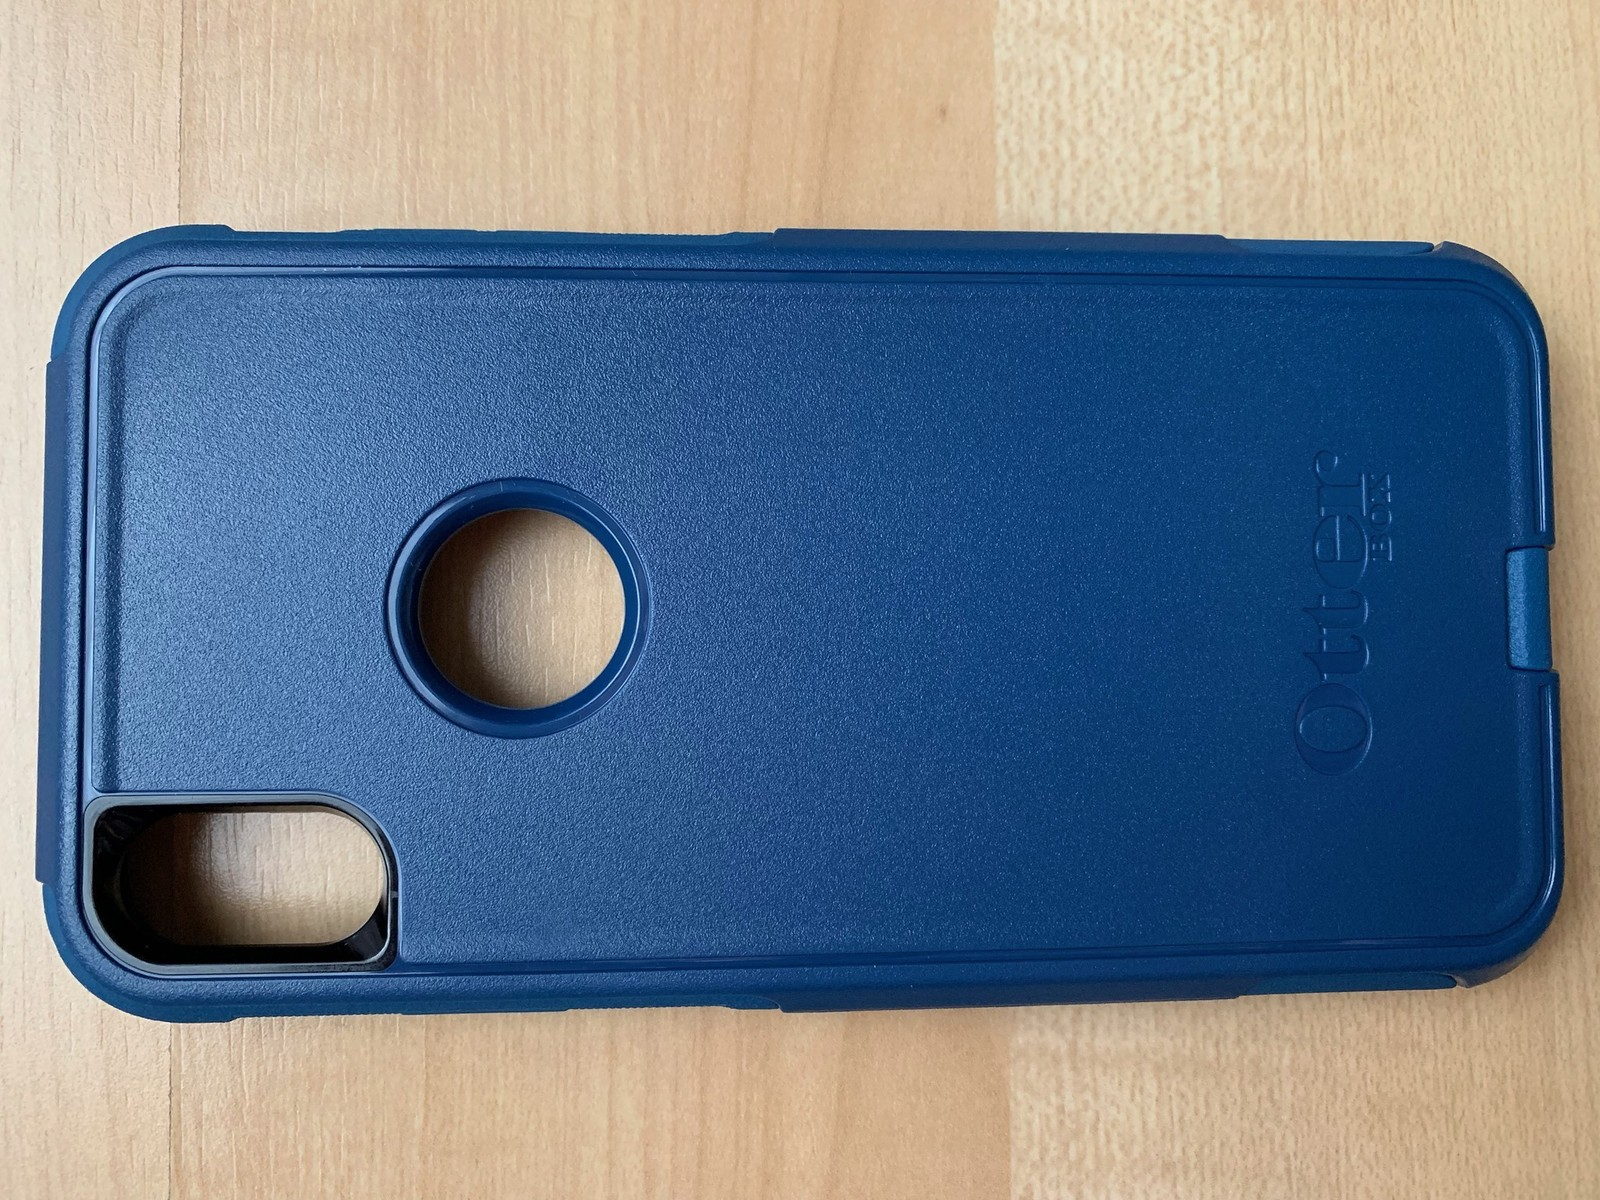 new product a904d 8bc27 Otterbox Commuter Case for iPhone review: solid protection | iMore